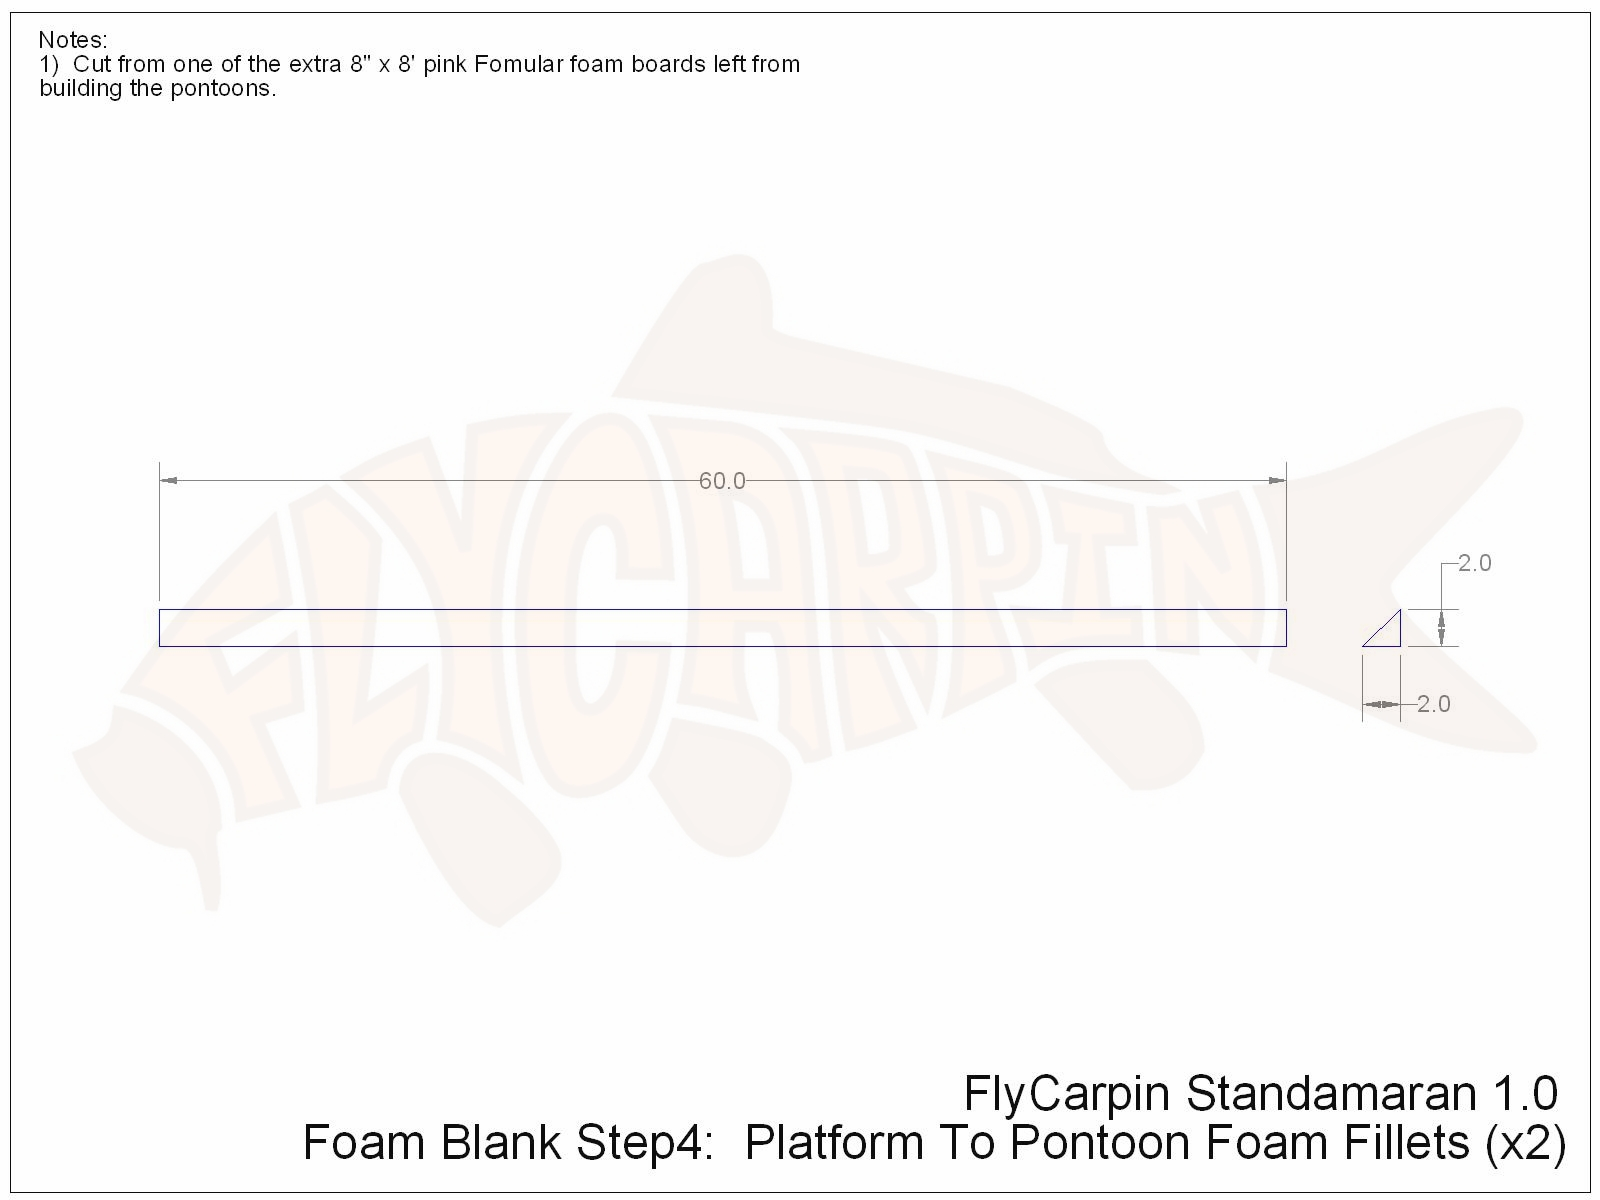 Standamaran SUP Plans Foam Blank Step 4